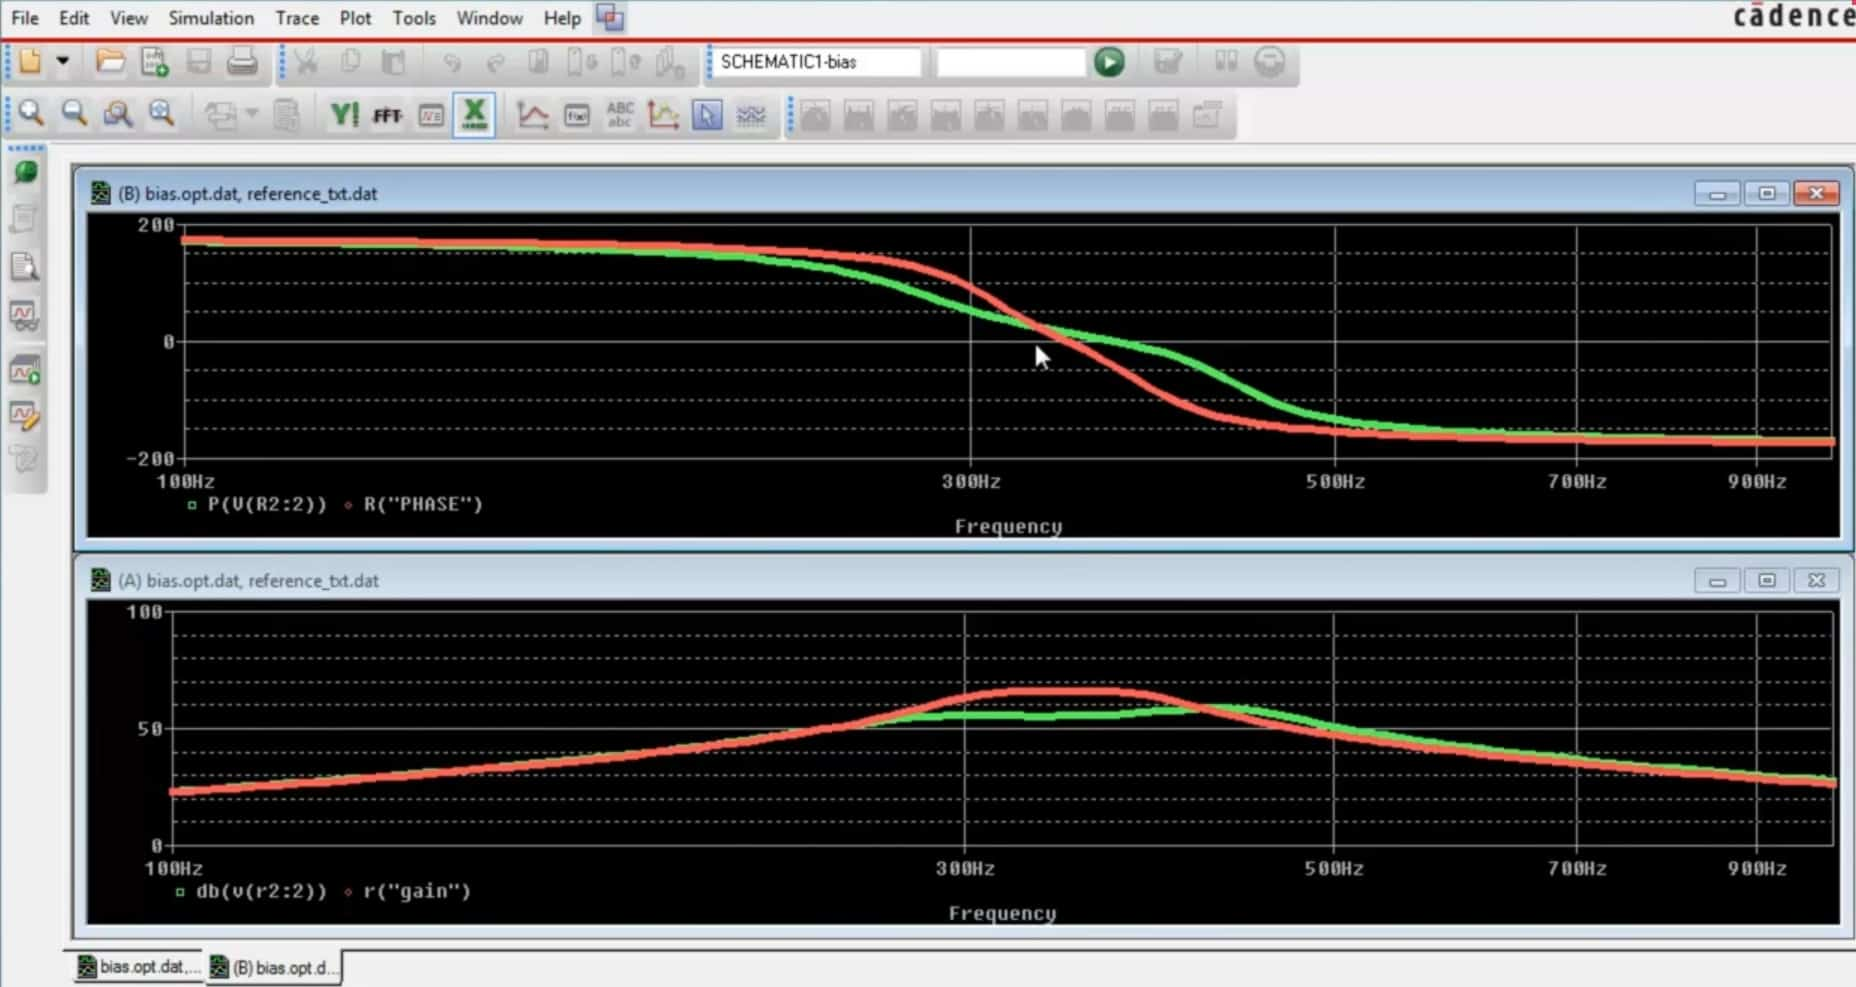 Low pass EMI filter analysis with PSpice